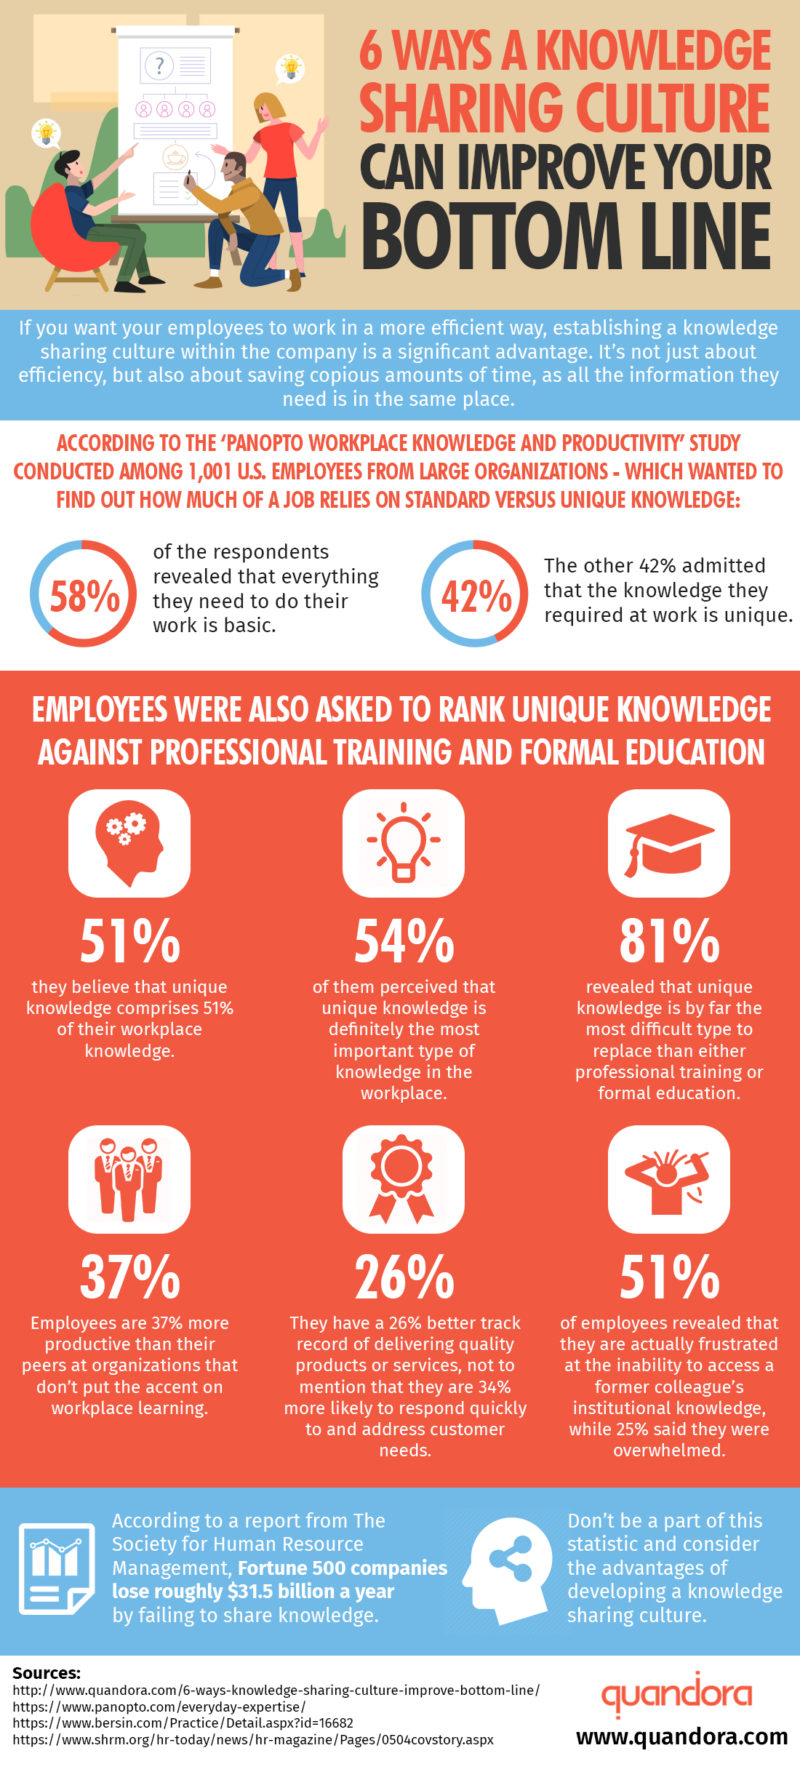 Quandora-knowledge-sharing-software-6-Ways a-Knowledge-Sharing-Culture-Can-Improve-Your-Bottom-Line-infographic